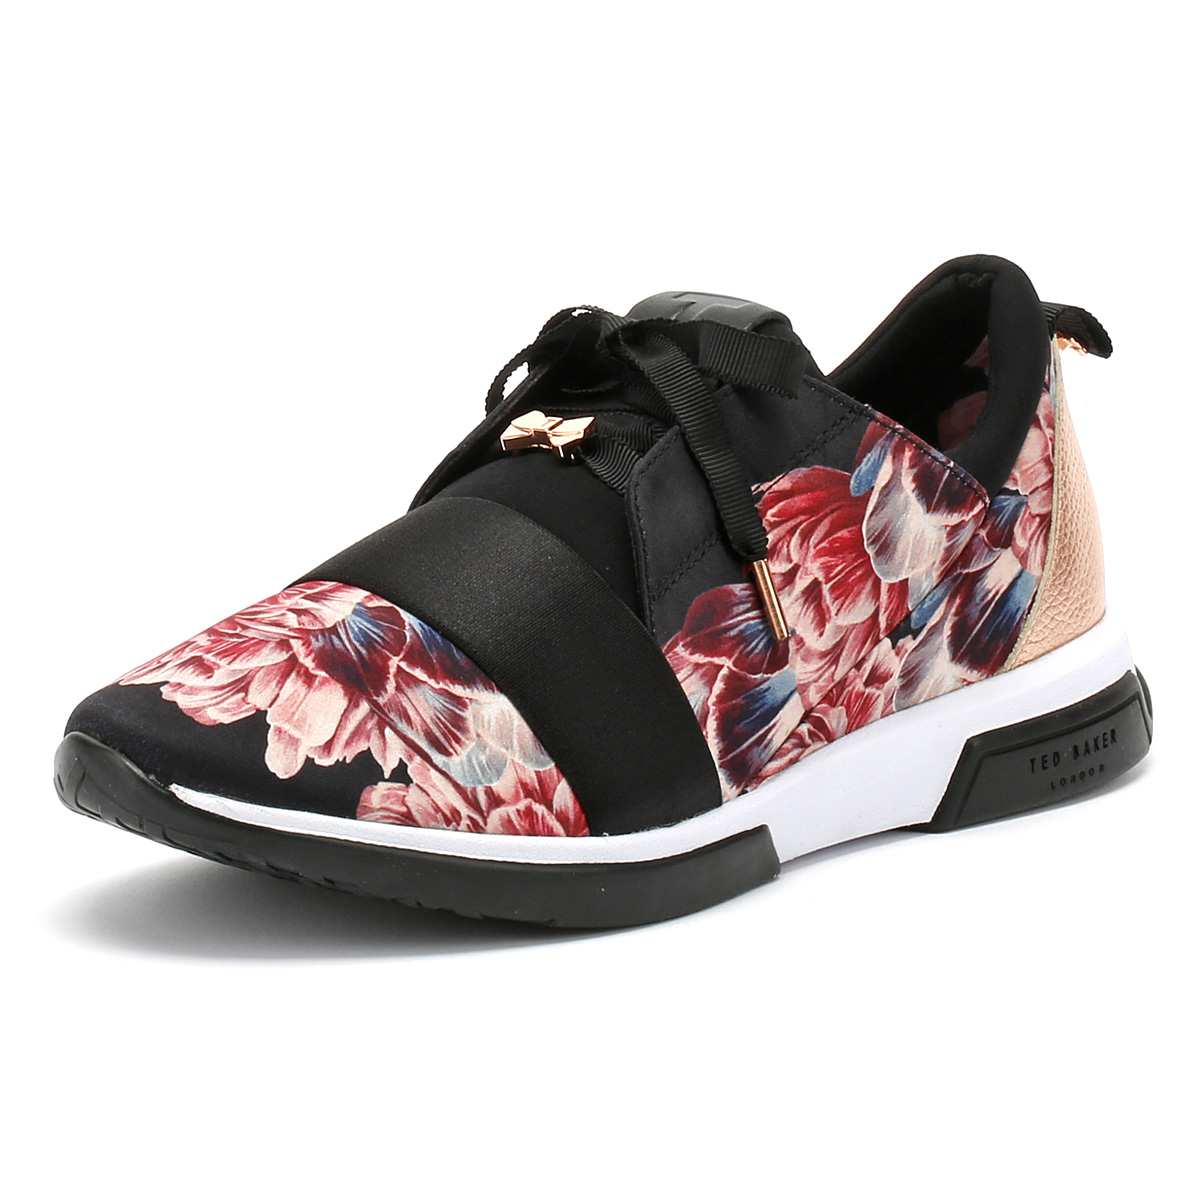 38a89a3e1c2326 Ted Baker Womens Tranquility Black Cepap 2 Trainers